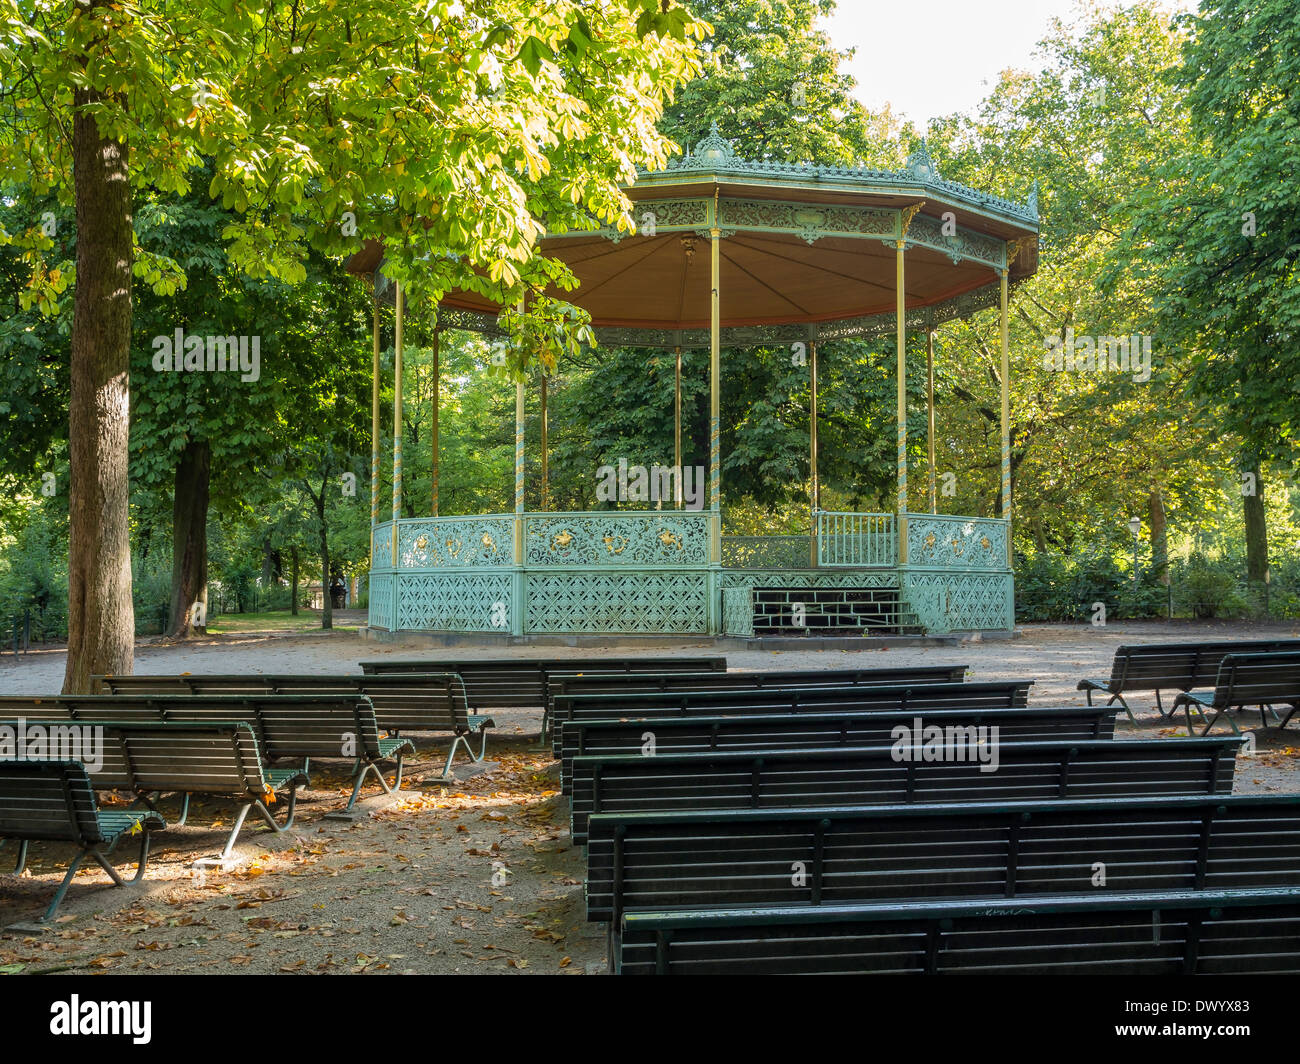 Bandstand and bench seats in Brussels Park, Belgium. - Stock Image